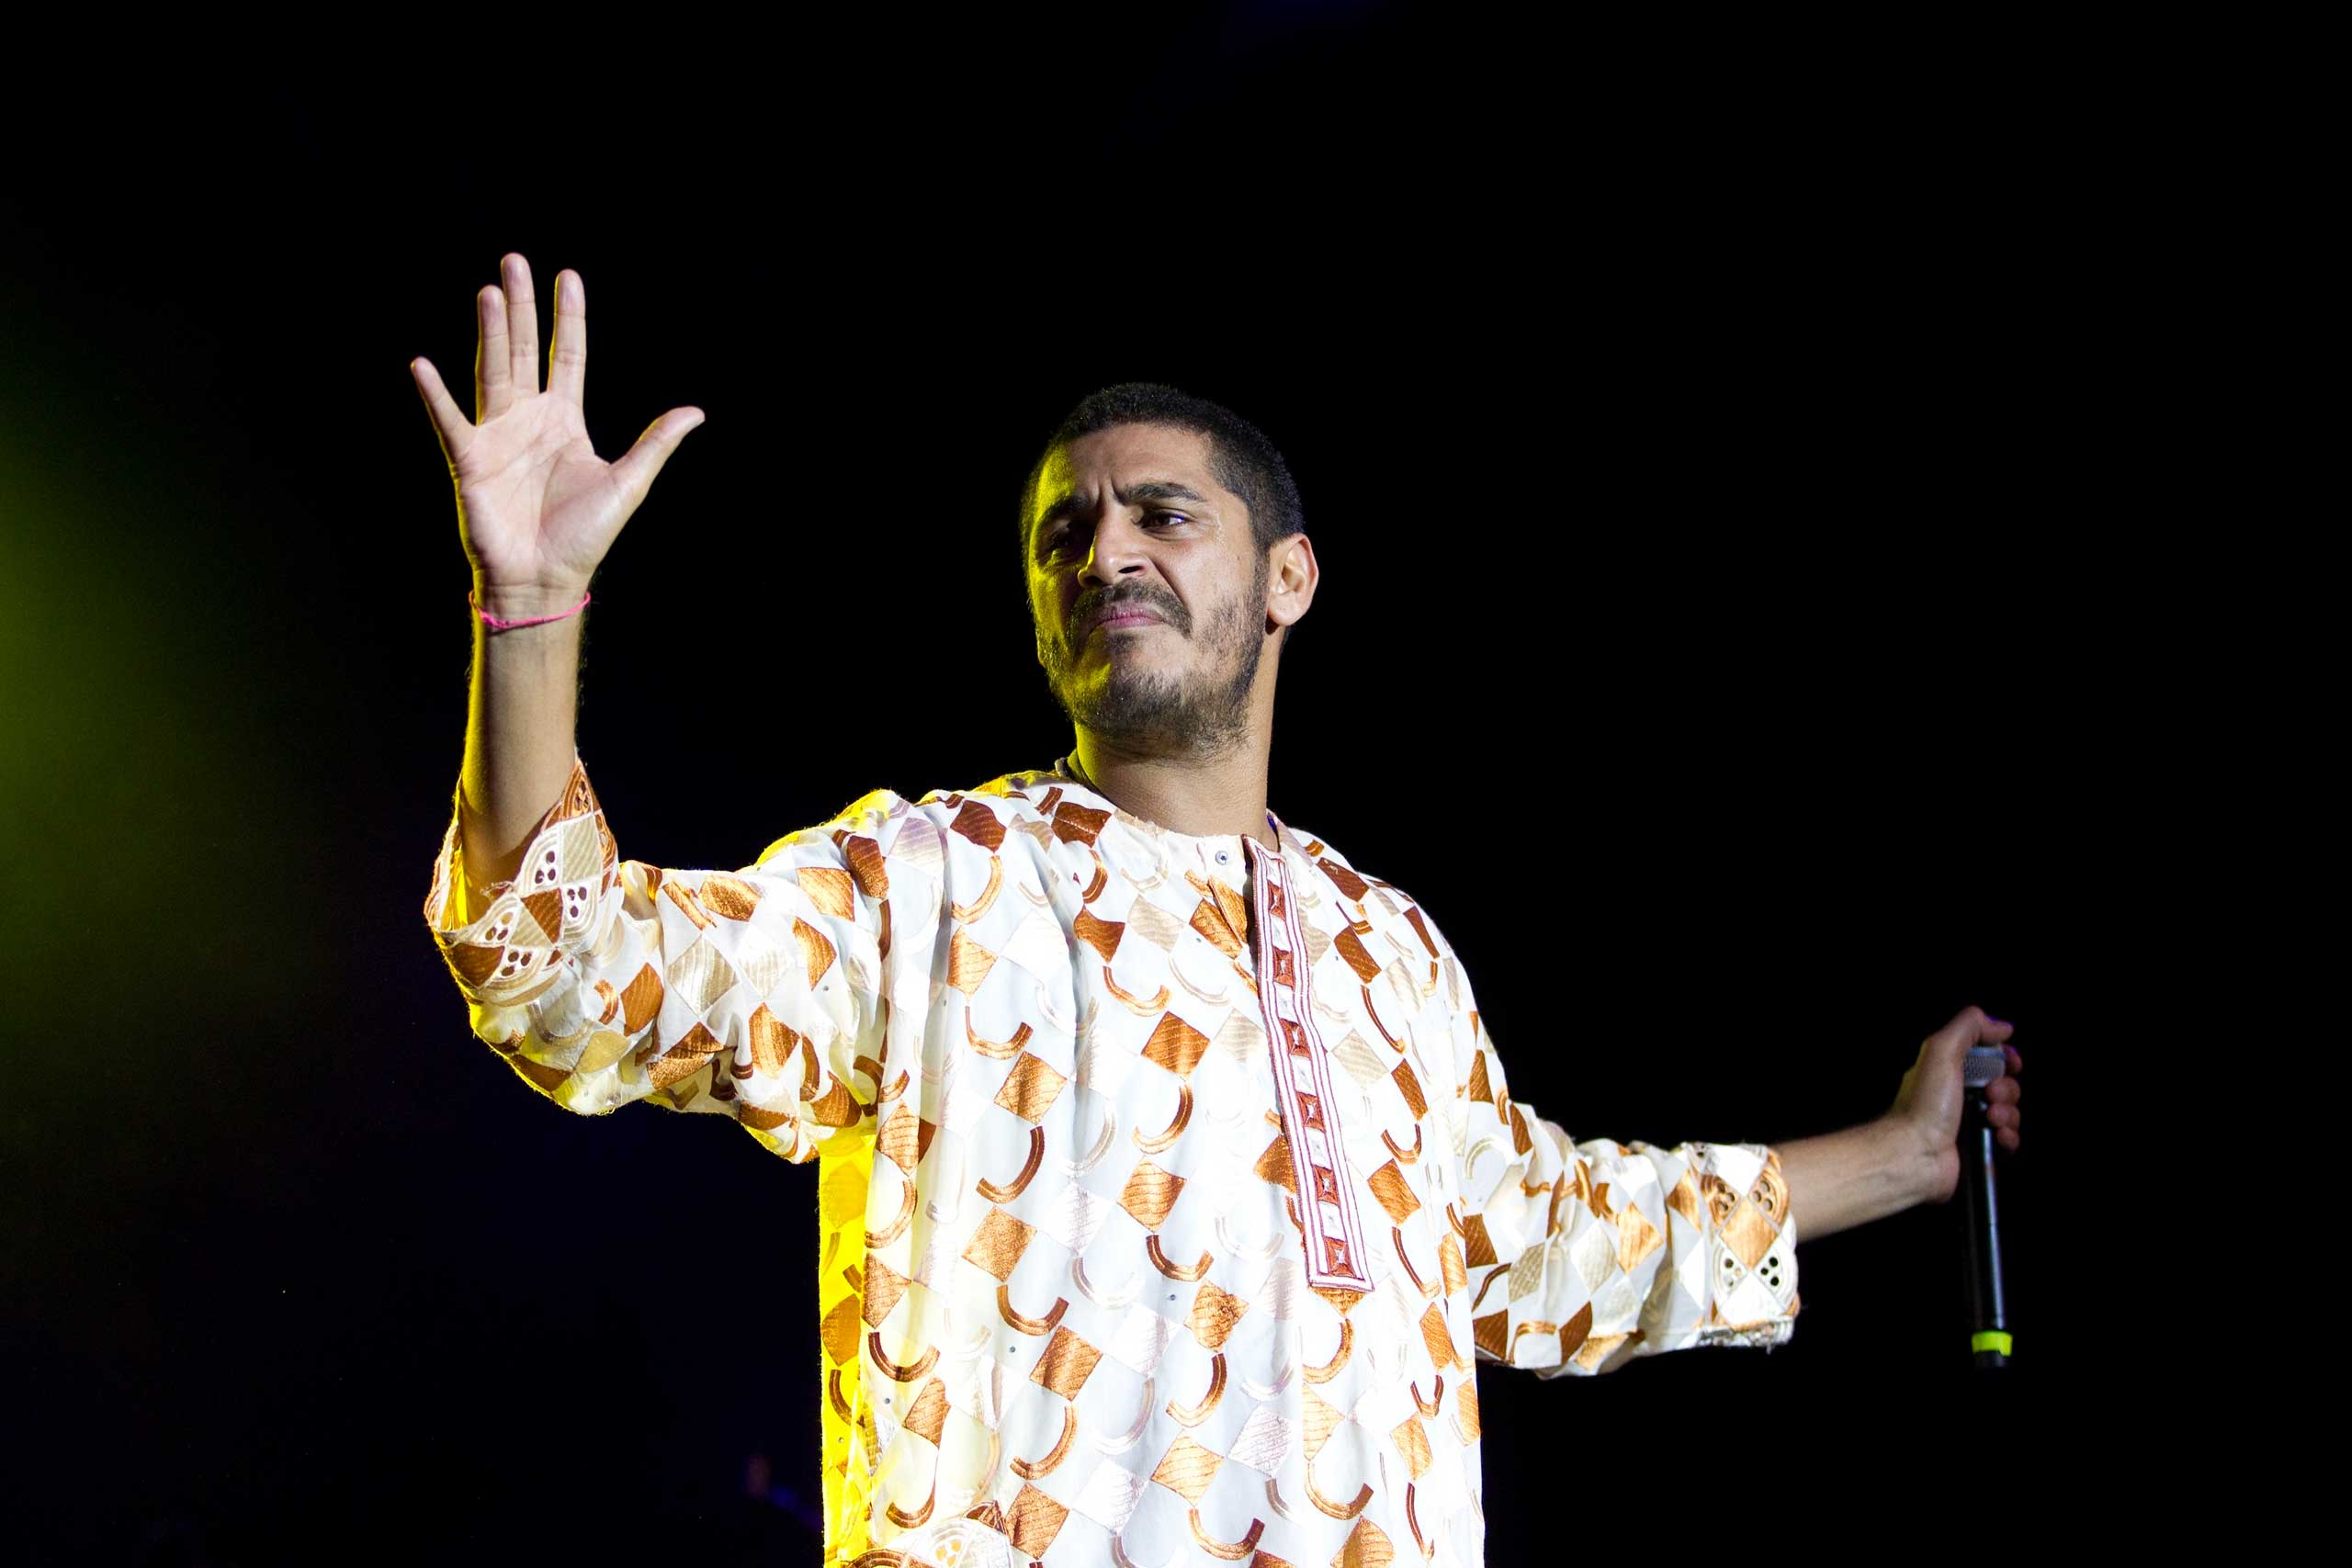 Criolo performing in London 2012.